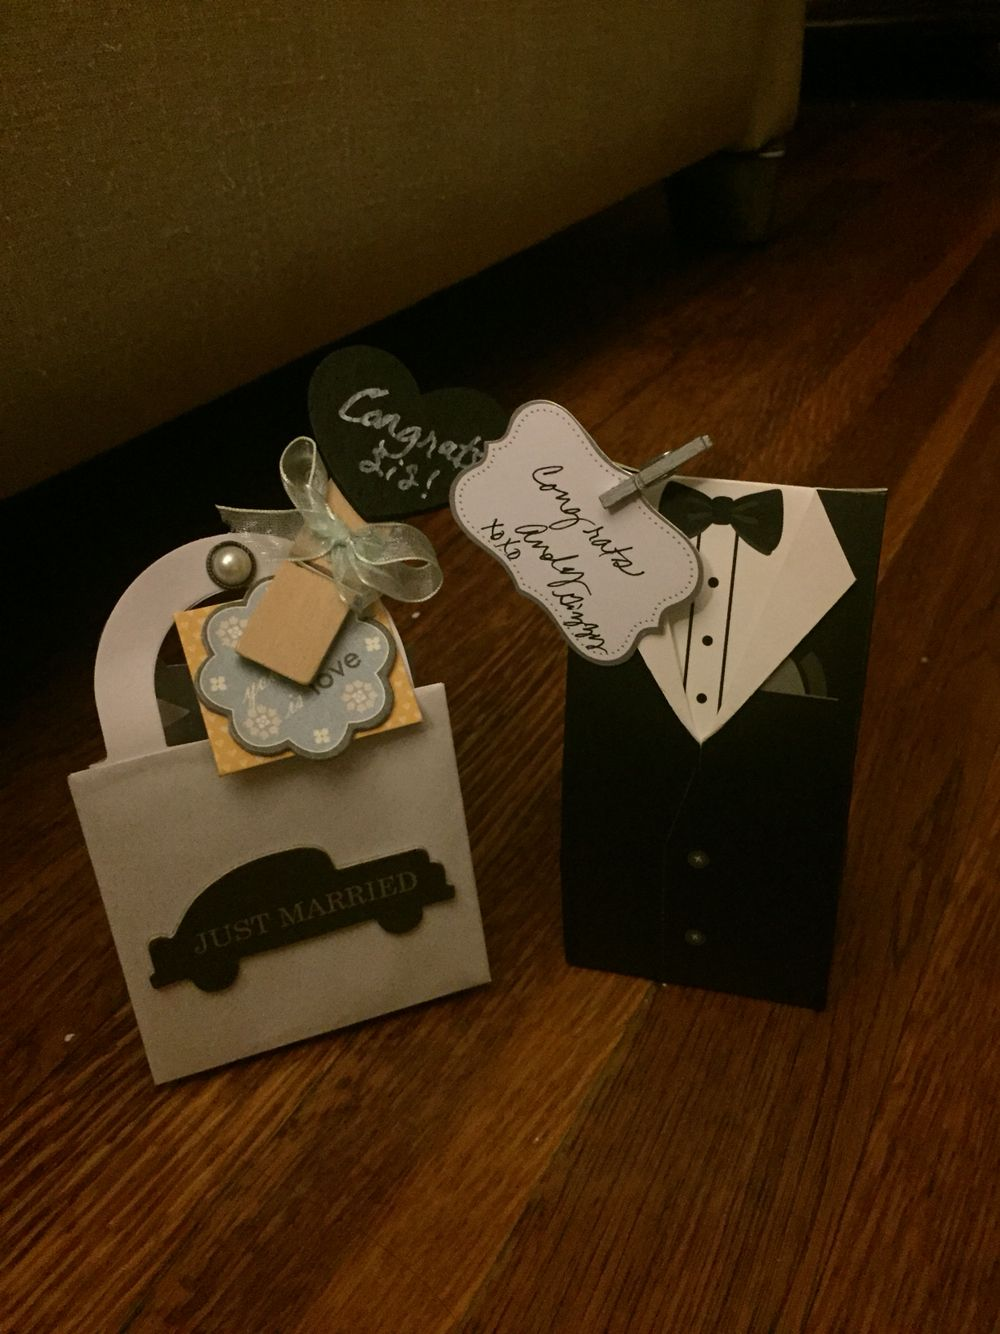 Mini wedding gifts from gizmo do it yourself pinterest mini wedding gifts from gizmo do it yourselfwedding solutioingenieria Image collections